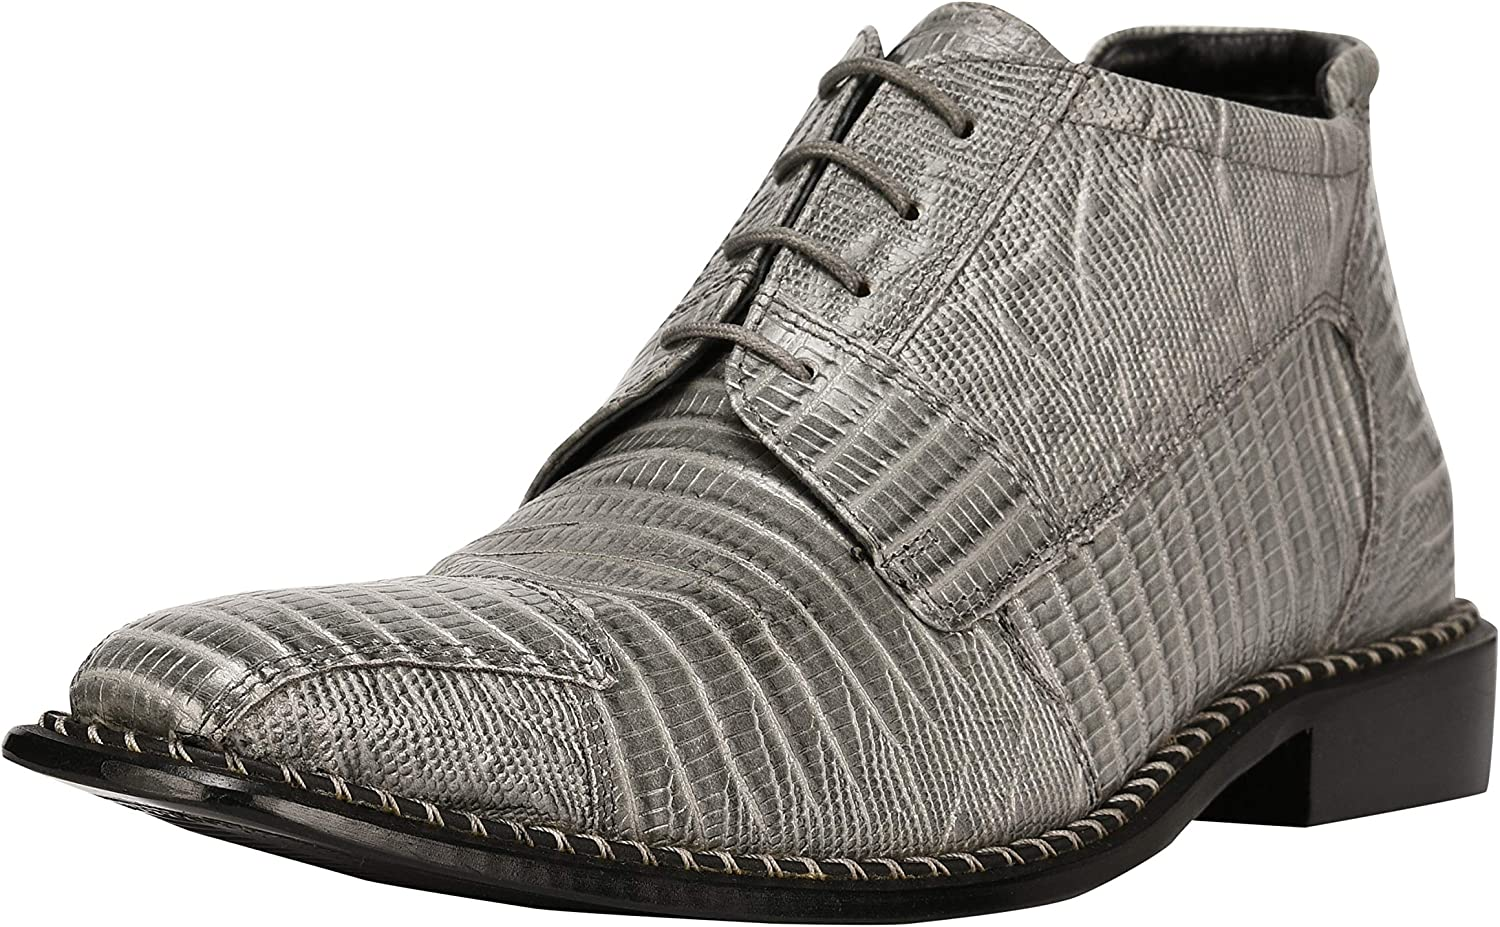 Liberty Men's Genuine Leather Ankle High Top Lizard Print Lace Up Dress Shoes